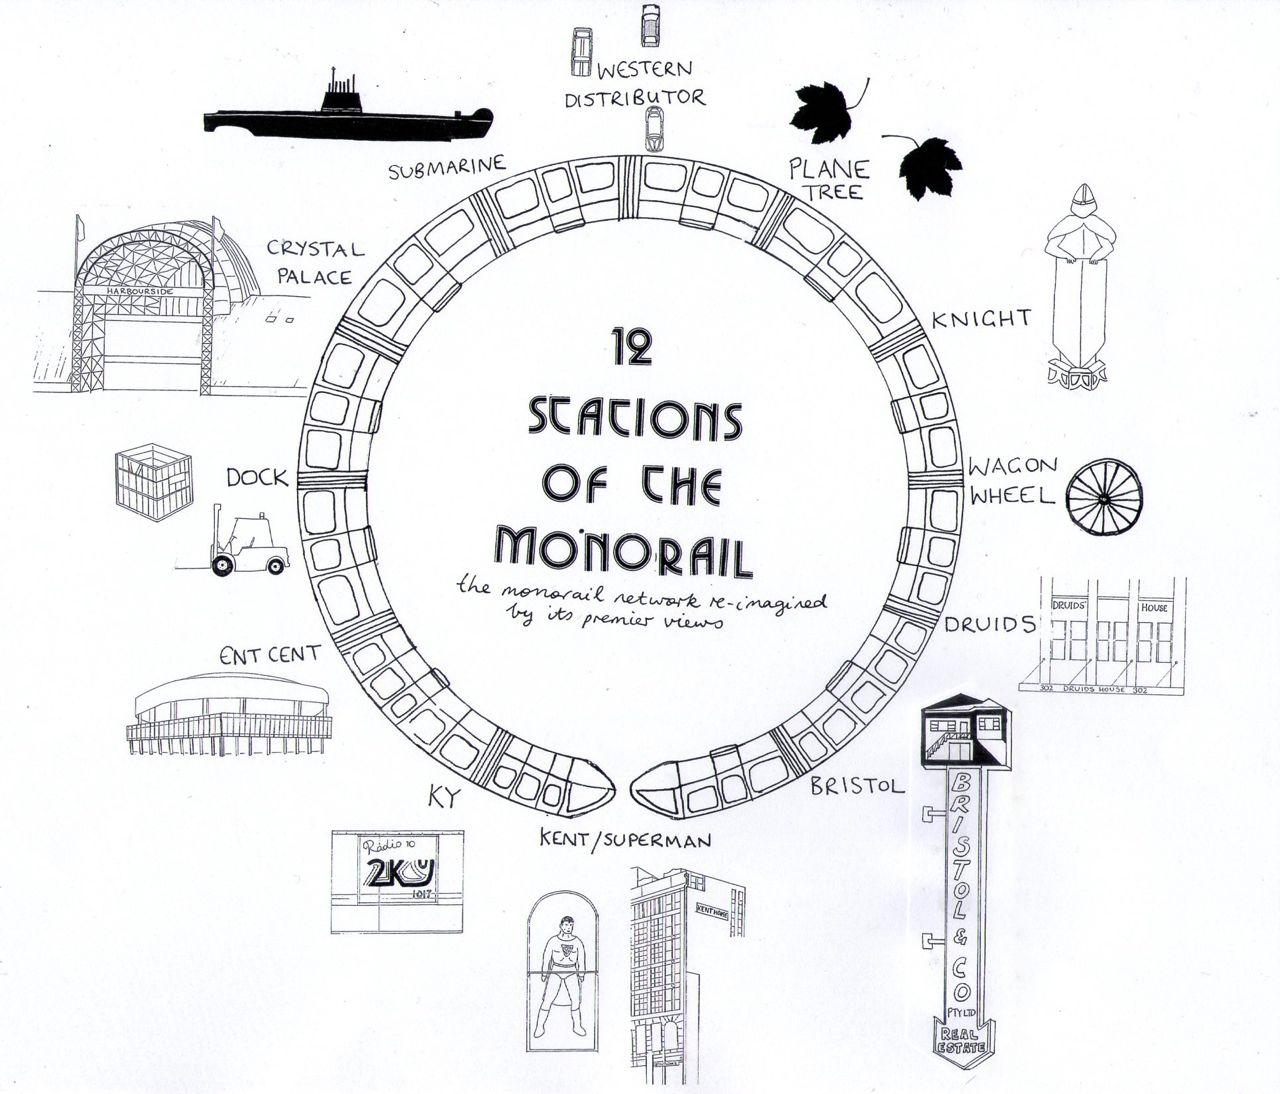 The Monorail Map